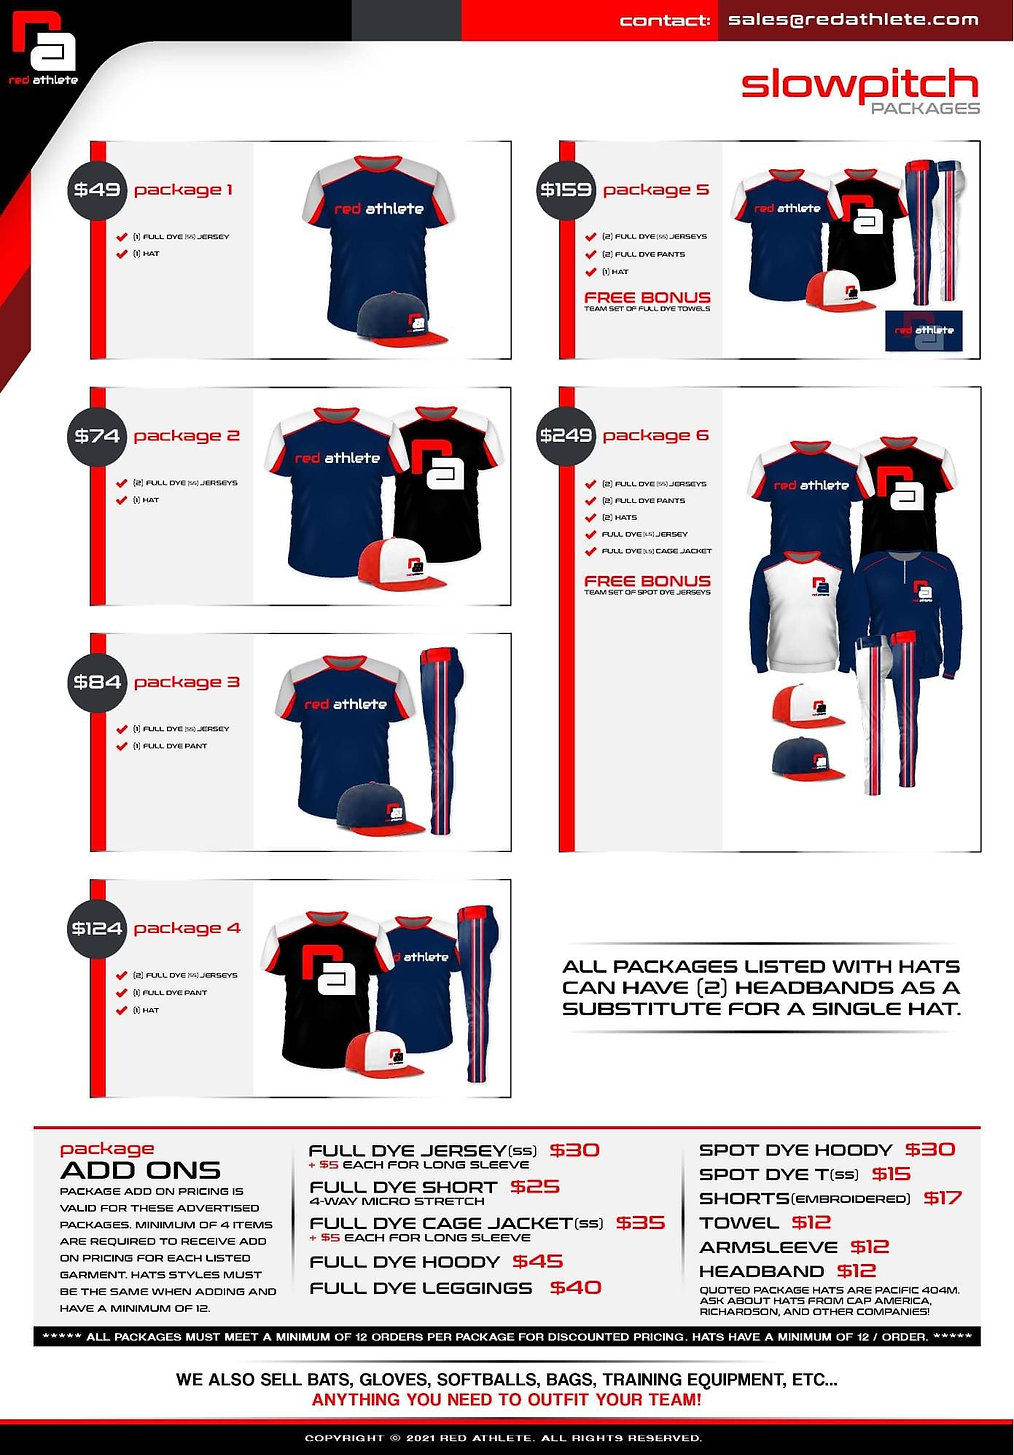 slowpitch sales pacages